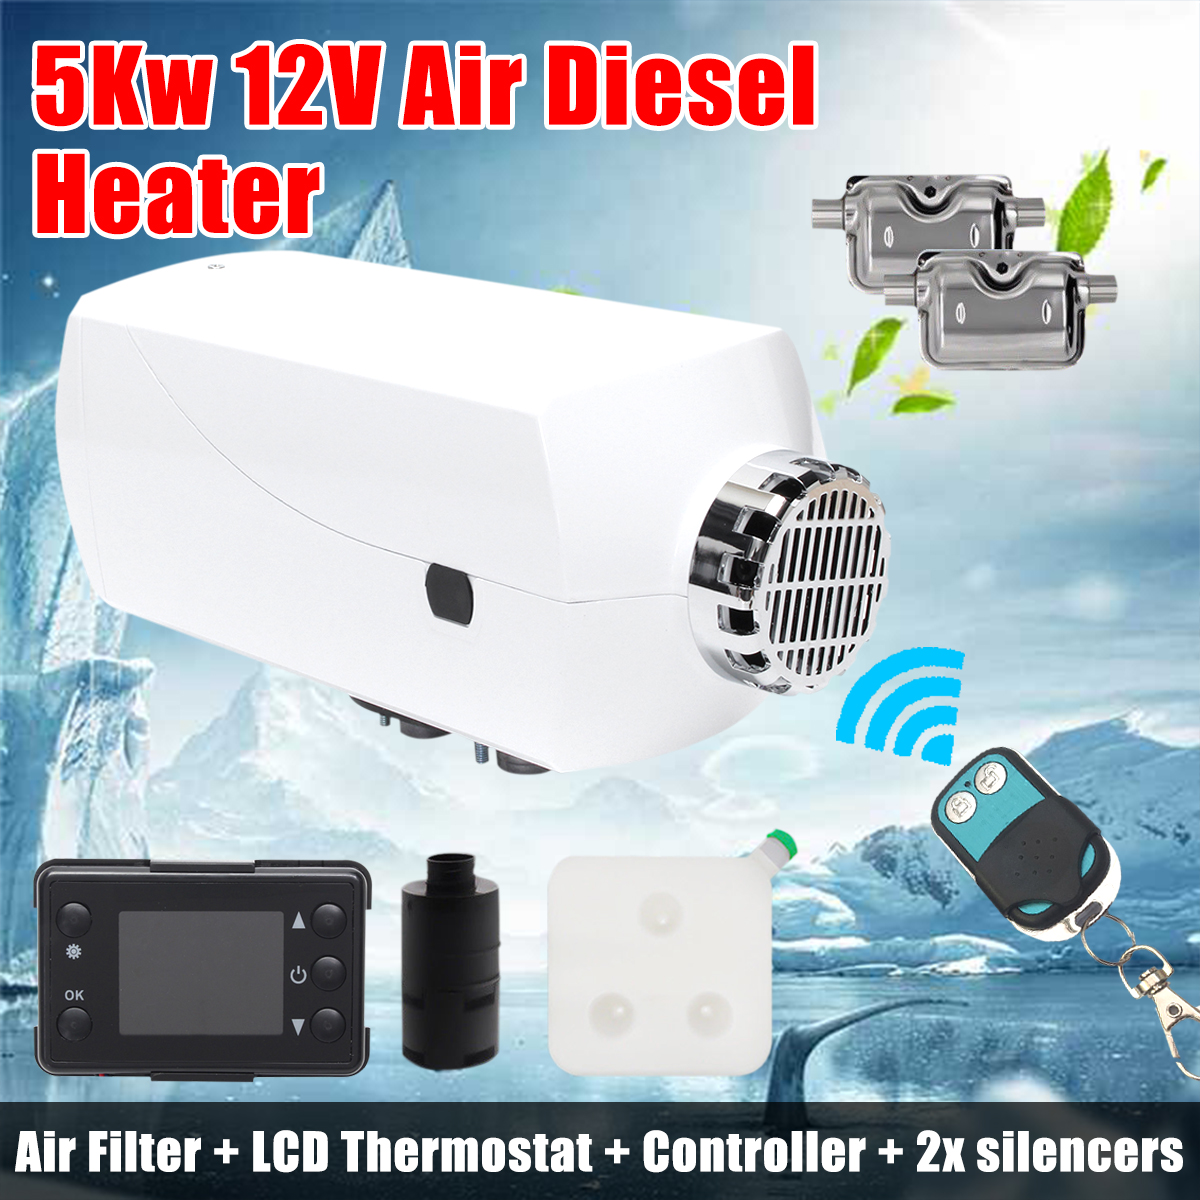 Car Heater 5000w Air Diesel Lcd Monitor 5kw 12v For Trucks Projector Multifunction Controller Circuit Diagram Control Motor Homes Boats Bus With Renote 2x Silencers In Heating Fans From Automobiles